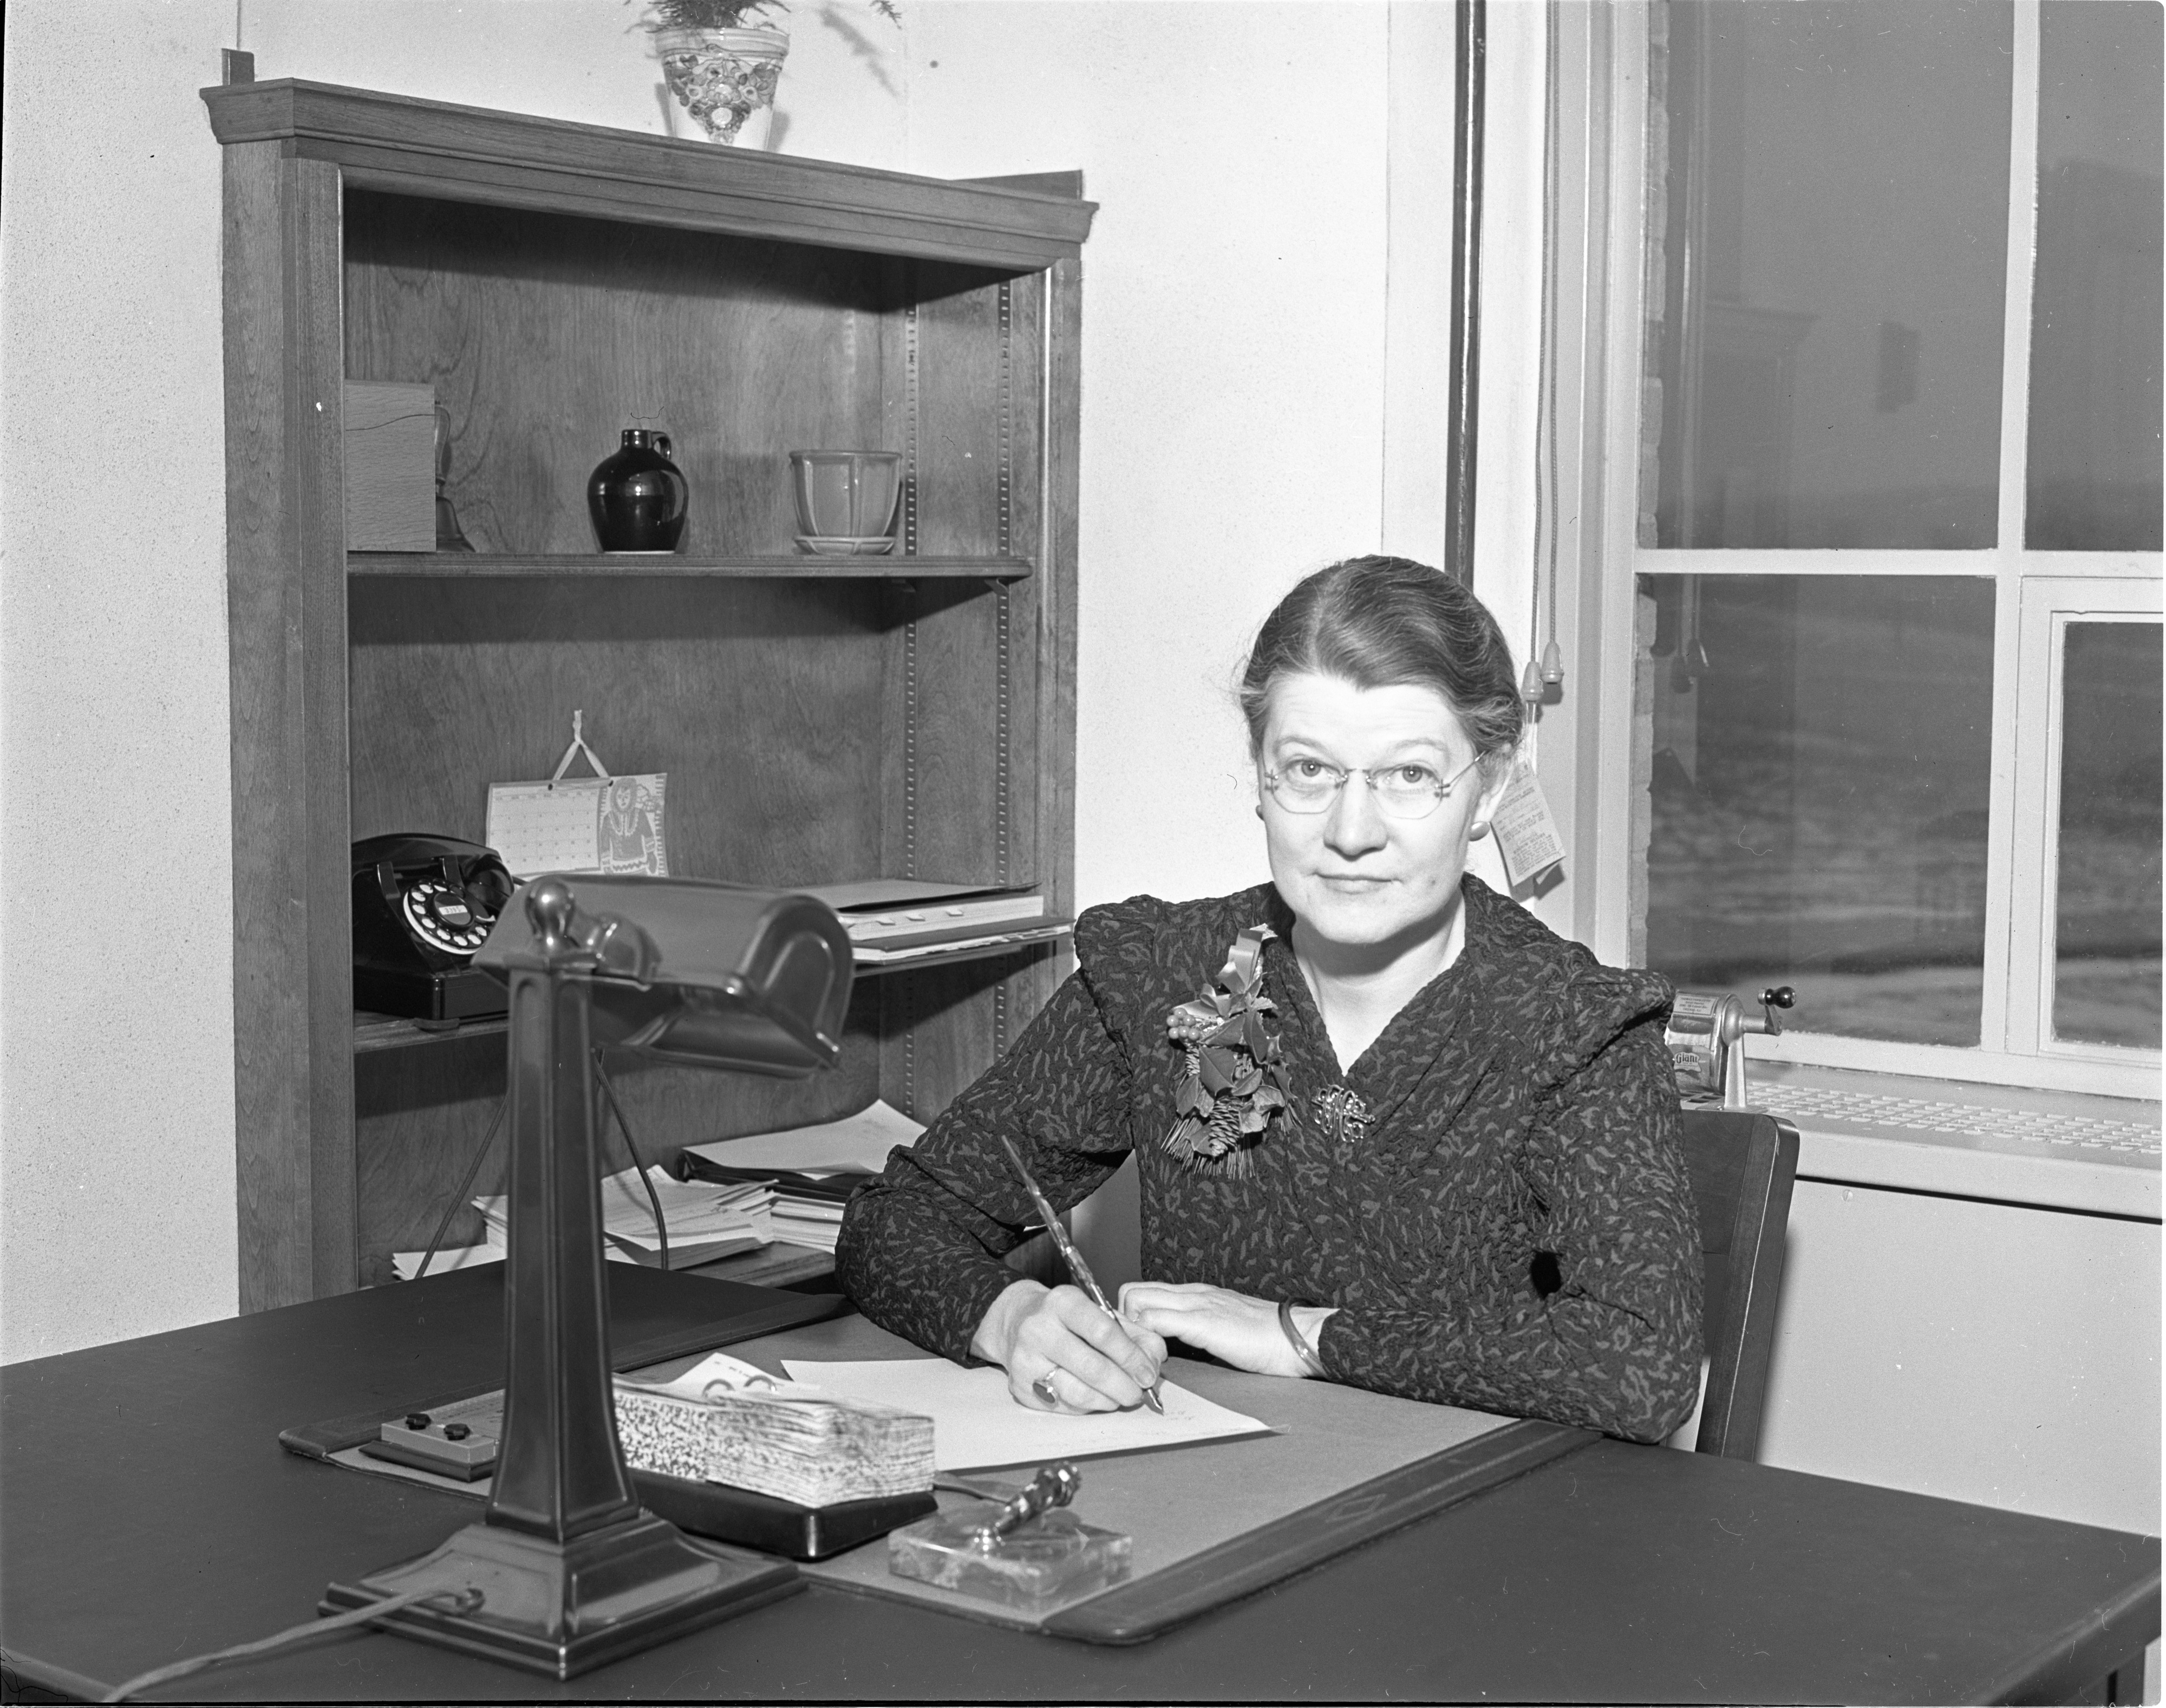 Katharine Harrington - Principal of New Northside School, January 1940 image